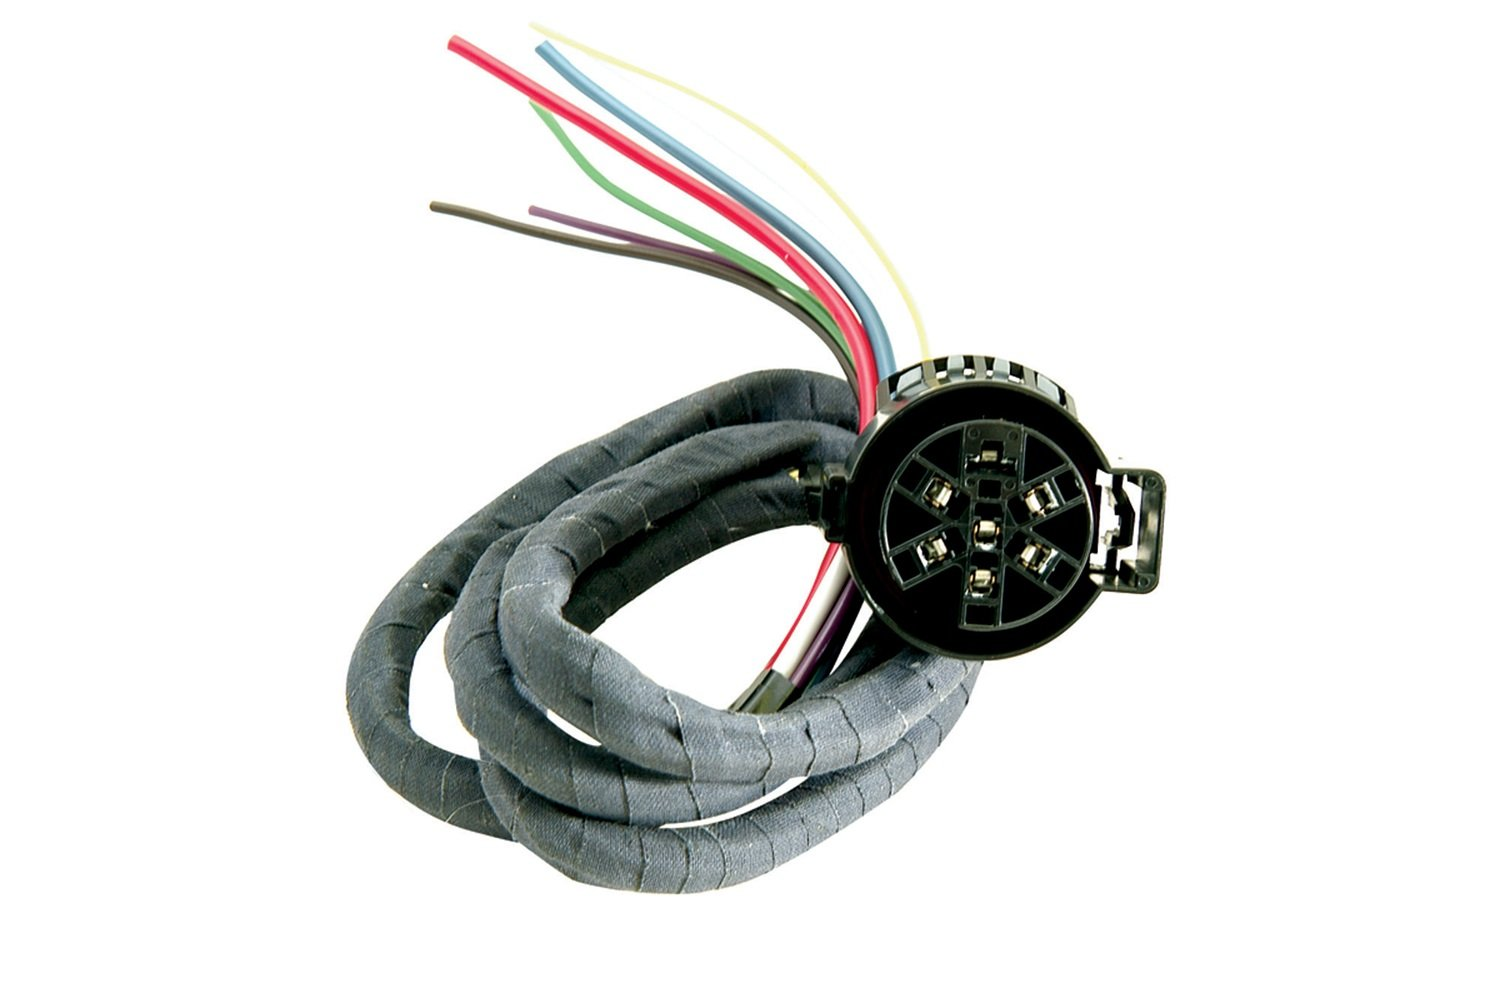 619JgDjQ1WL._SL1500_ amazon com hopkins 40985 universal multi tow harness connector universal wiring harness connector at soozxer.org